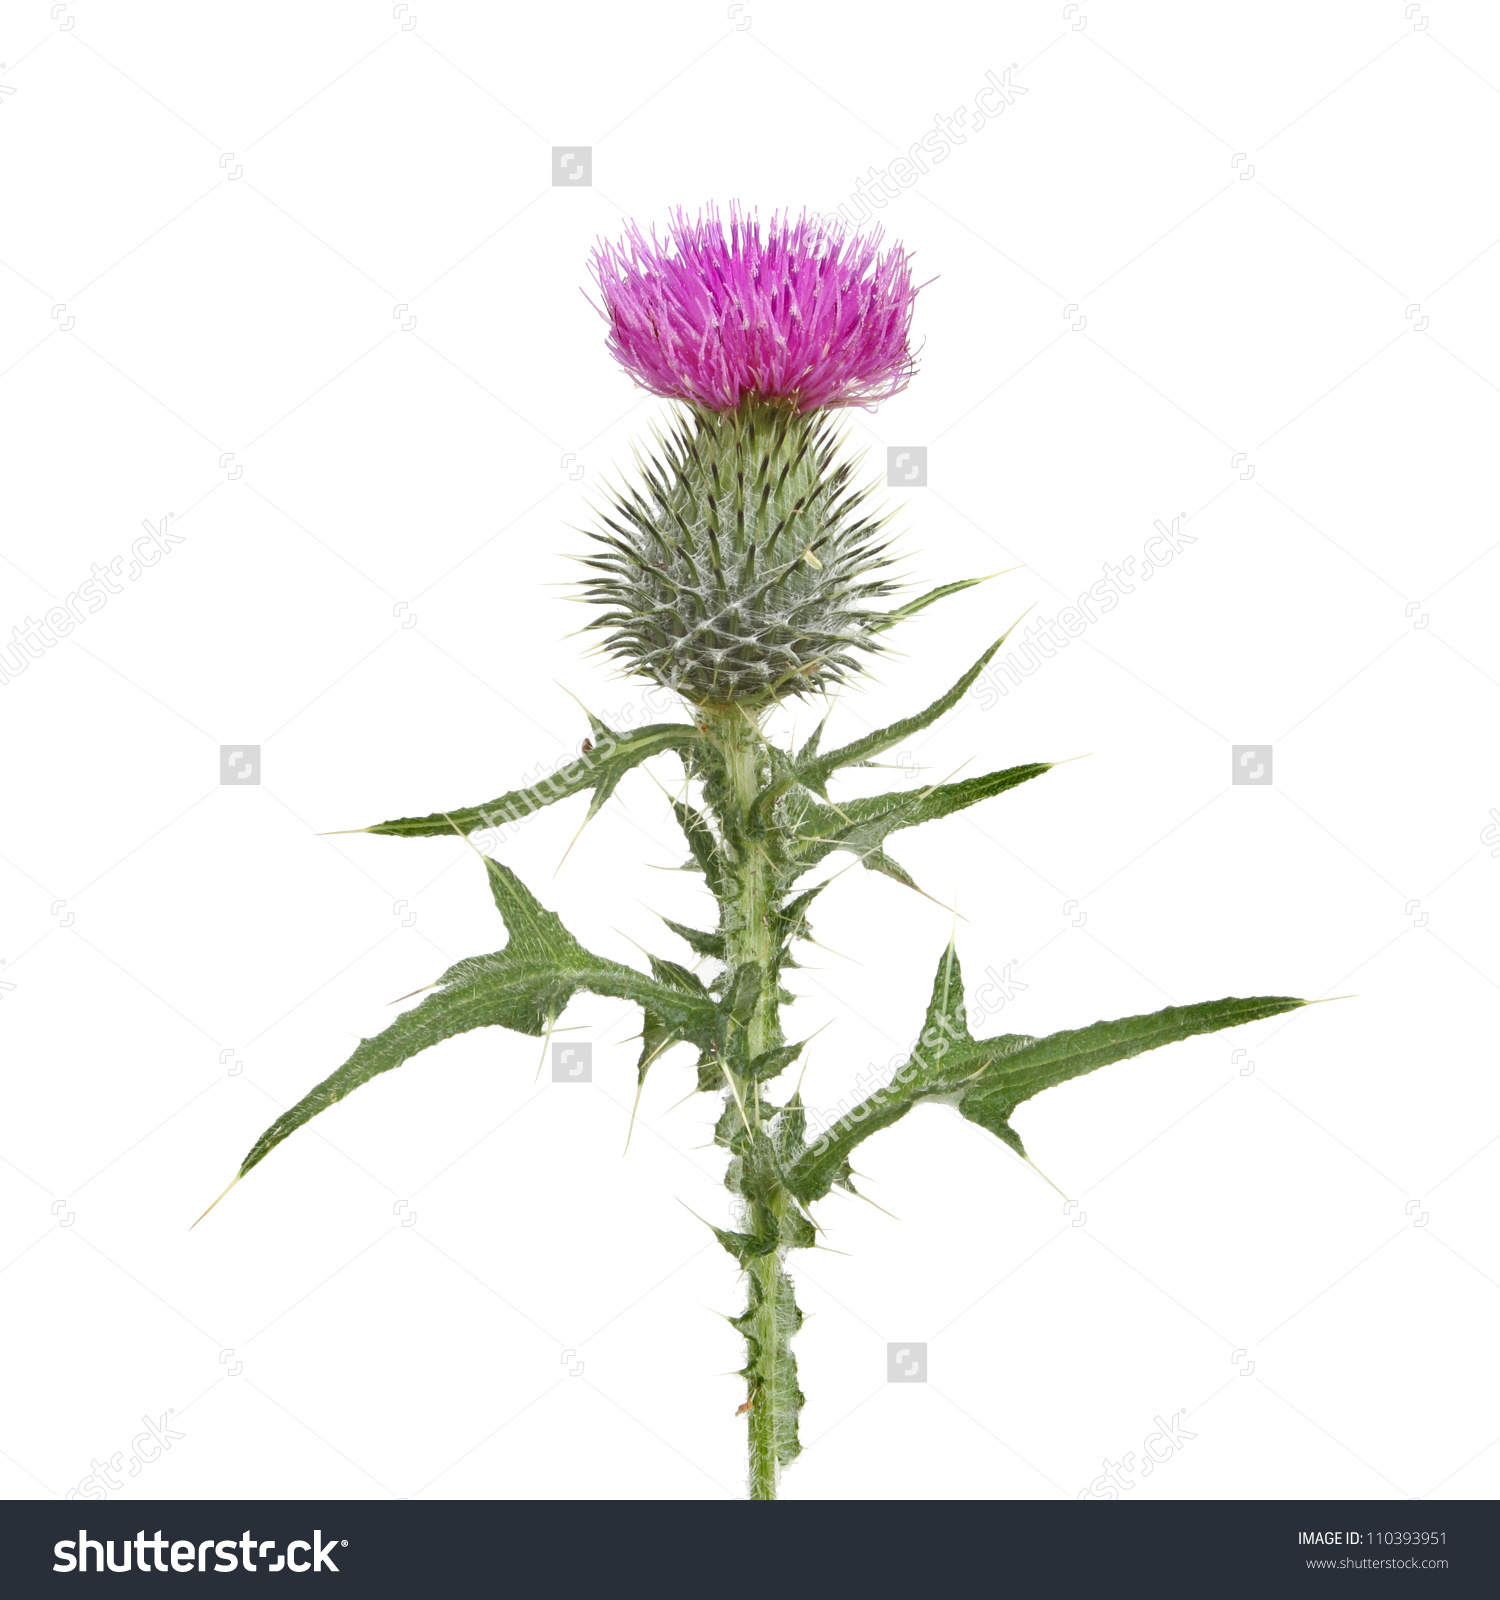 Thistle Flower Leaves Isolated Against White Stock Photo 110393951.